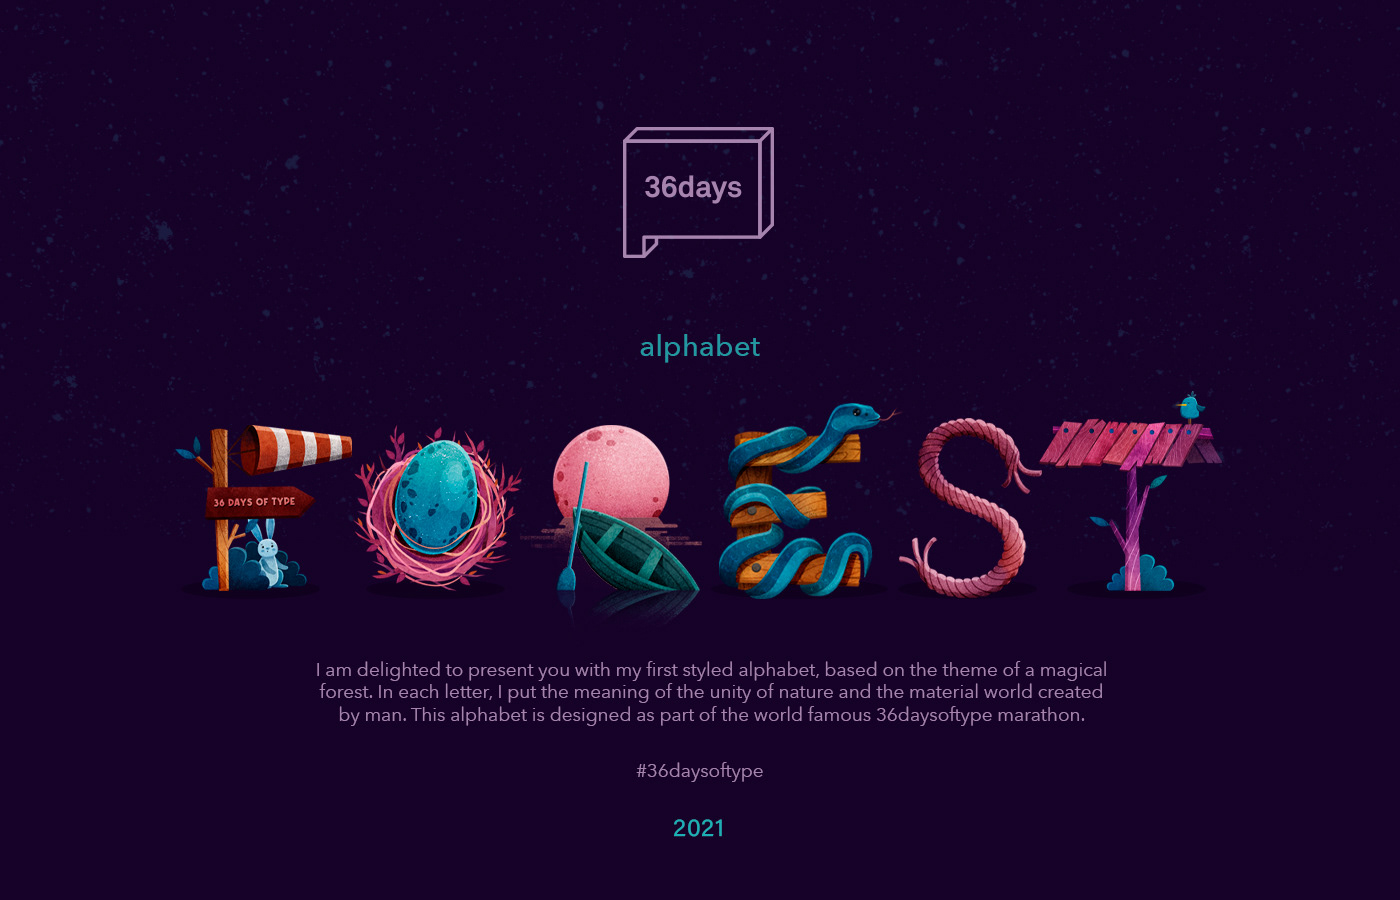 36daysoftype alphabet book font forest ILLUSTRATION  lettering letters type typography